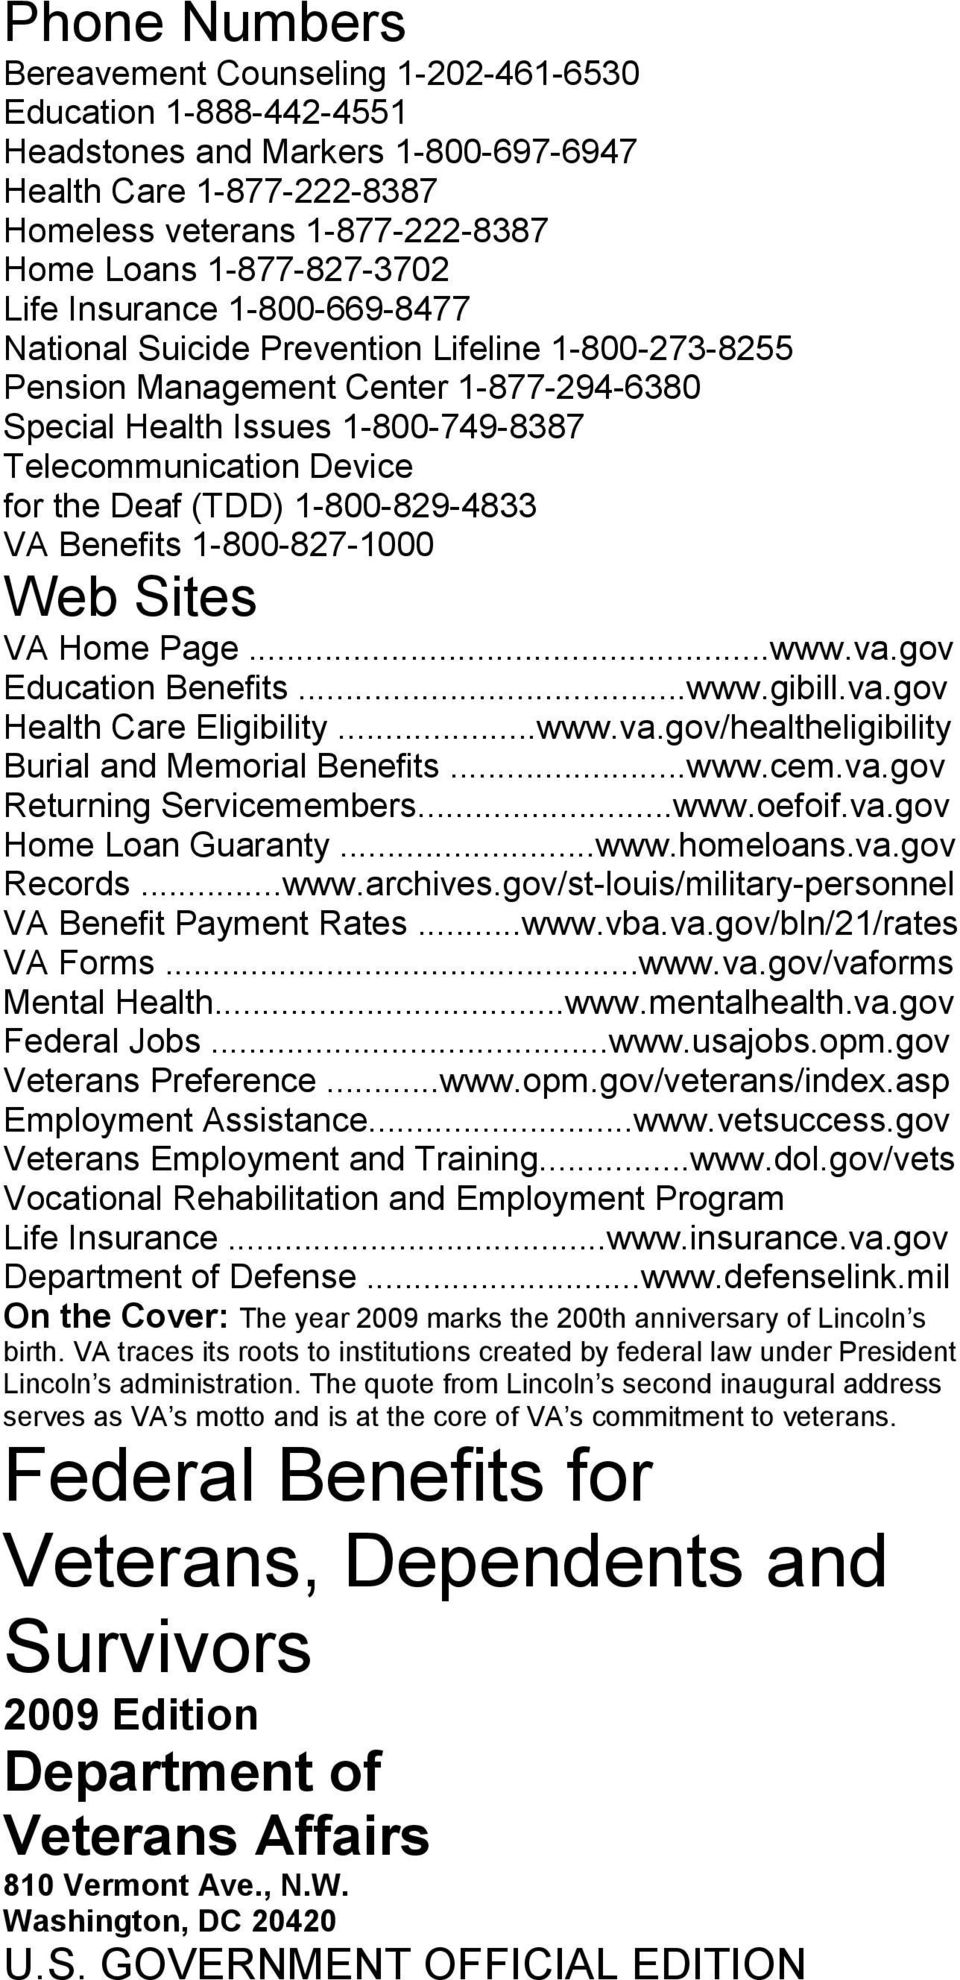 for the Deaf (TDD) 1-800-829-4833 VA Benefits 1-800-827-1000 Web Sites VA Home Page...www.va.gov Education Benefits...www.gibill.va.gov Health Care Eligibility...www.va.gov/healtheligibility Burial and Memorial Benefits.